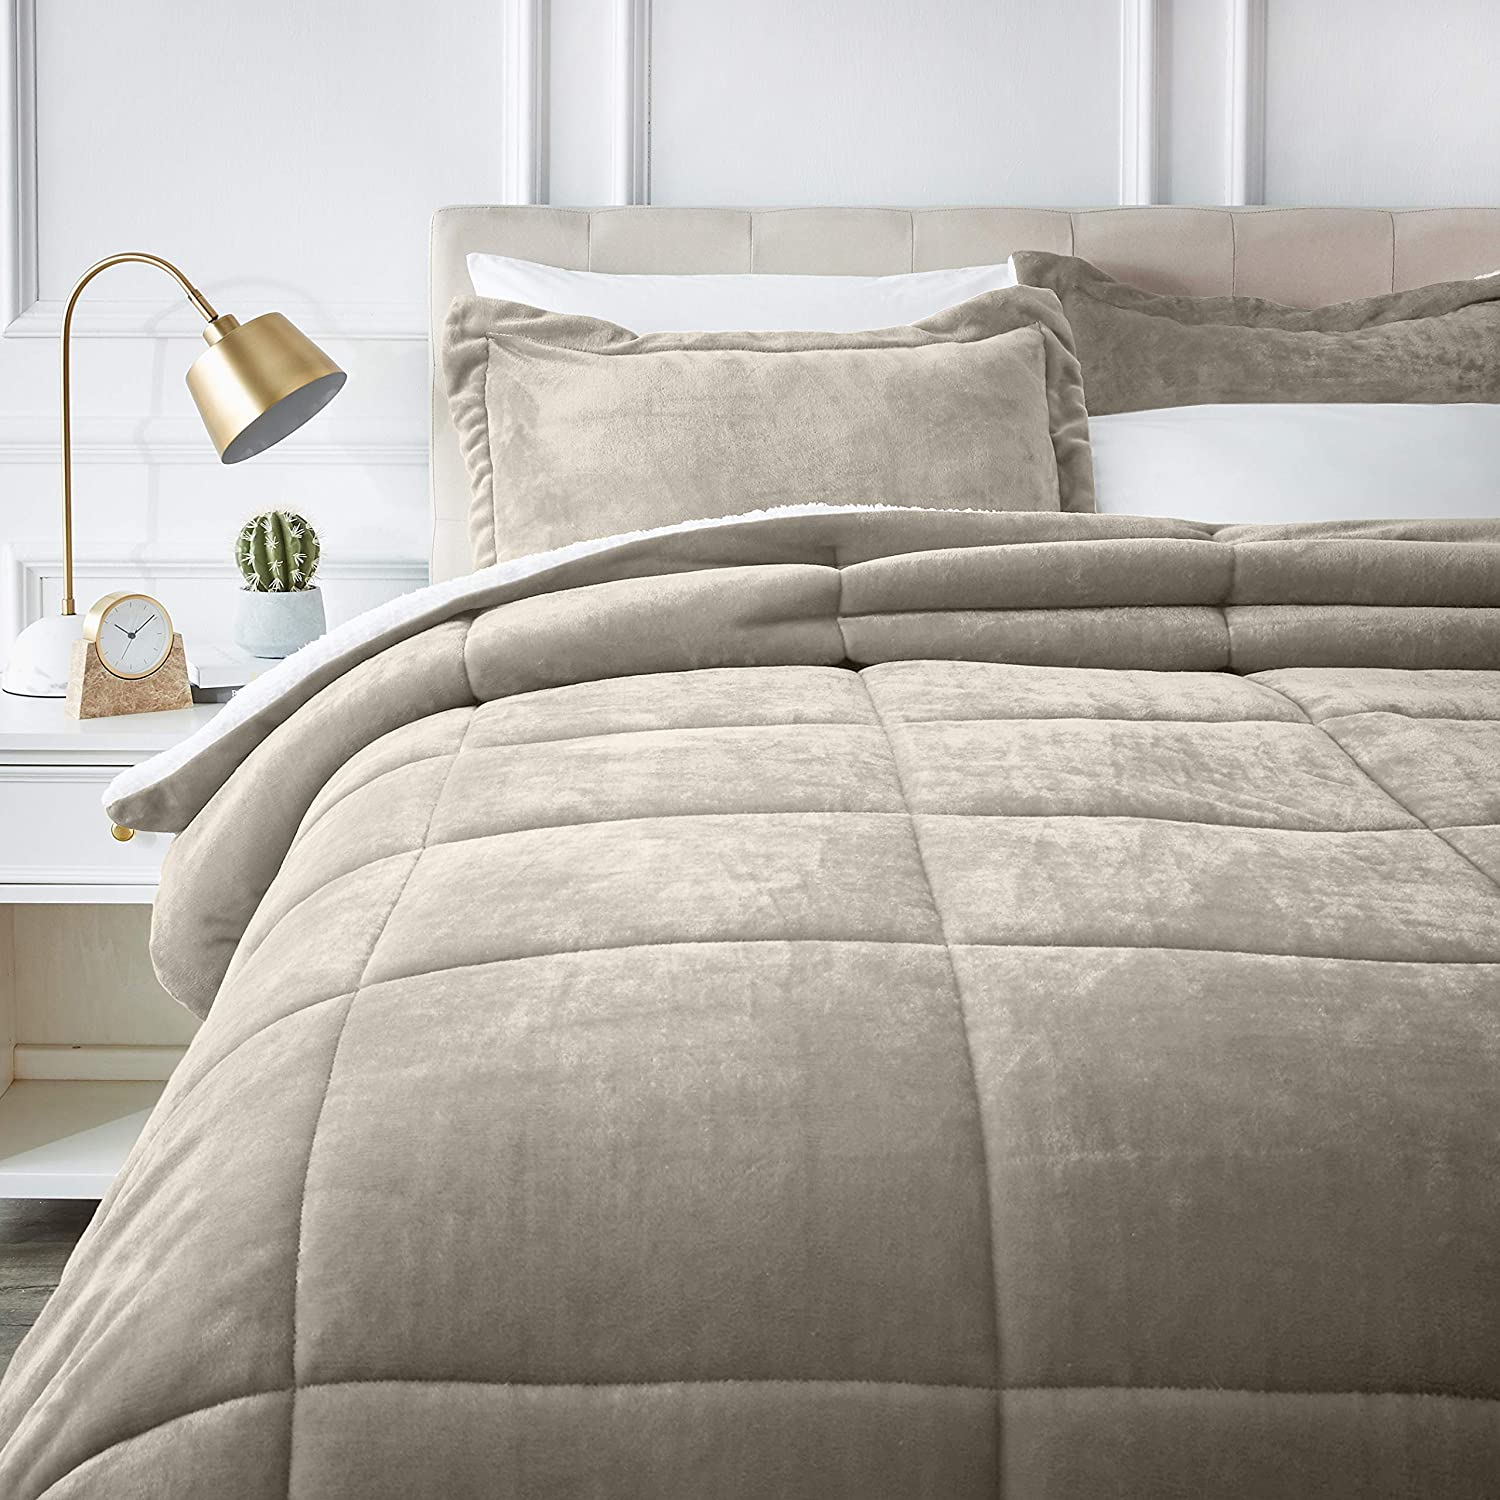 AmazonBasics Micromink Sherpa Comforter Set - Ultra-Soft, Fray-Resistant -Full/Queen, Taupe